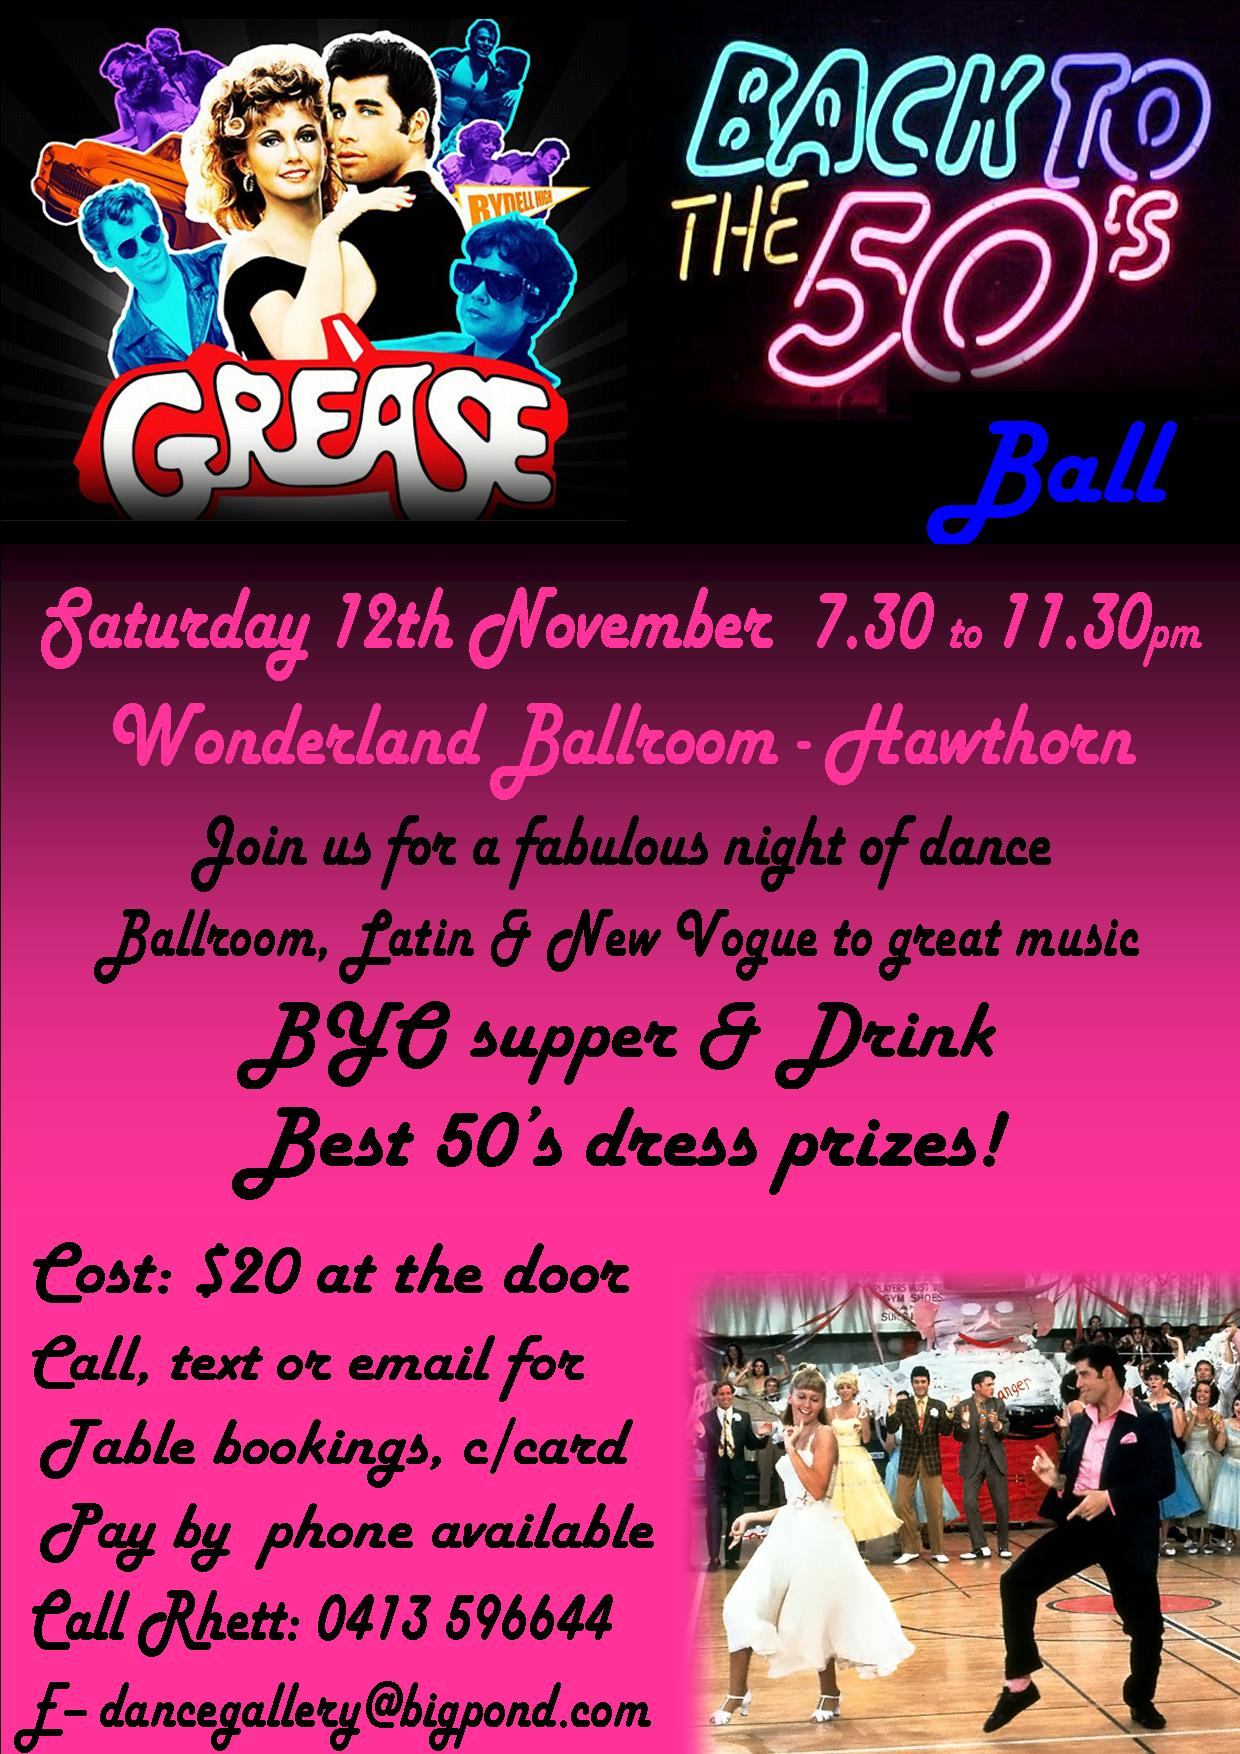 Grease50sBall2016